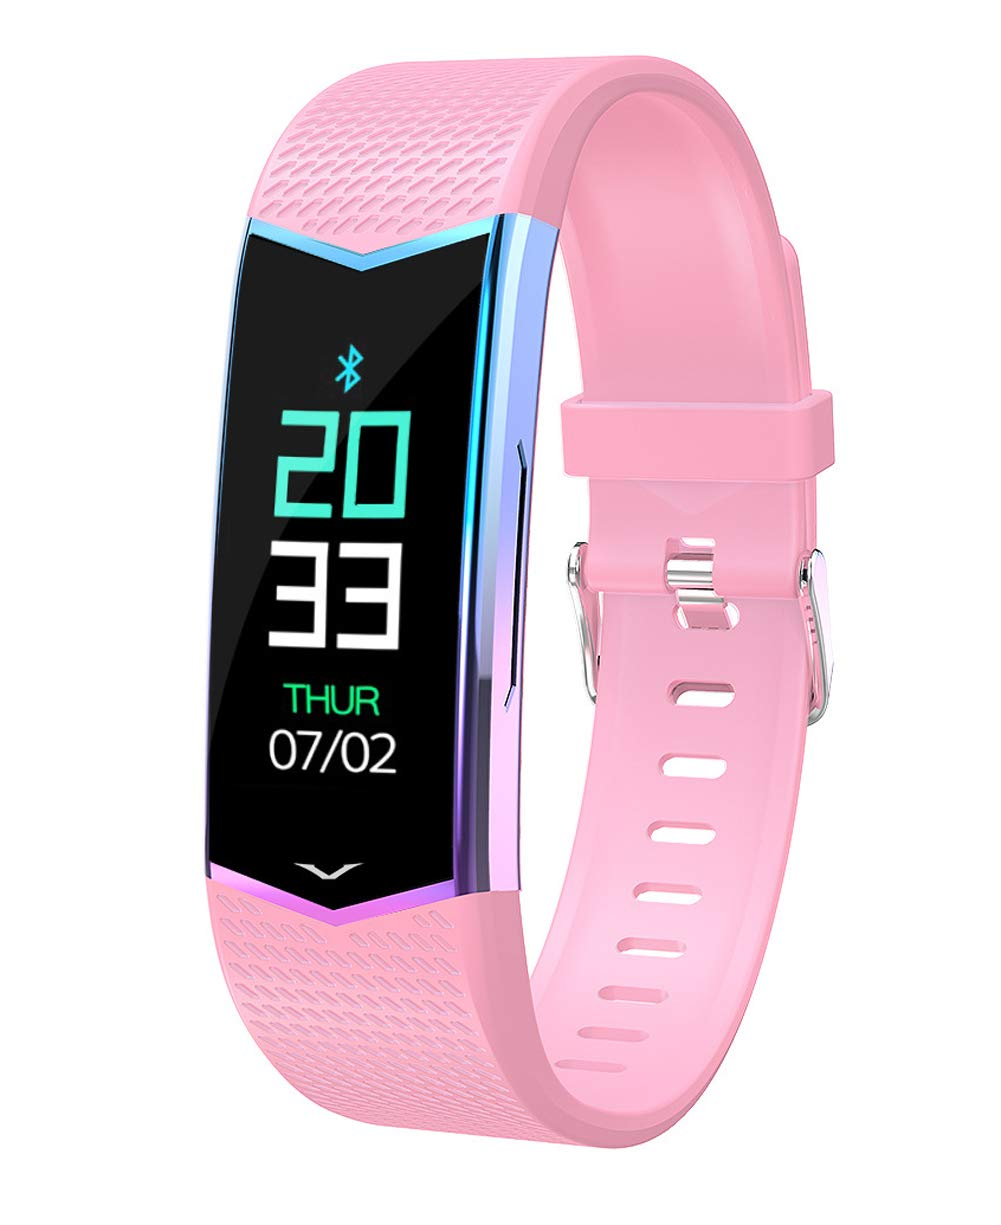 Smart Bracelet with Sleep Monitoring Pedometer Calorie Counter, Waterproof Smart Bracelet for Android iOS-Pink by YANGYA